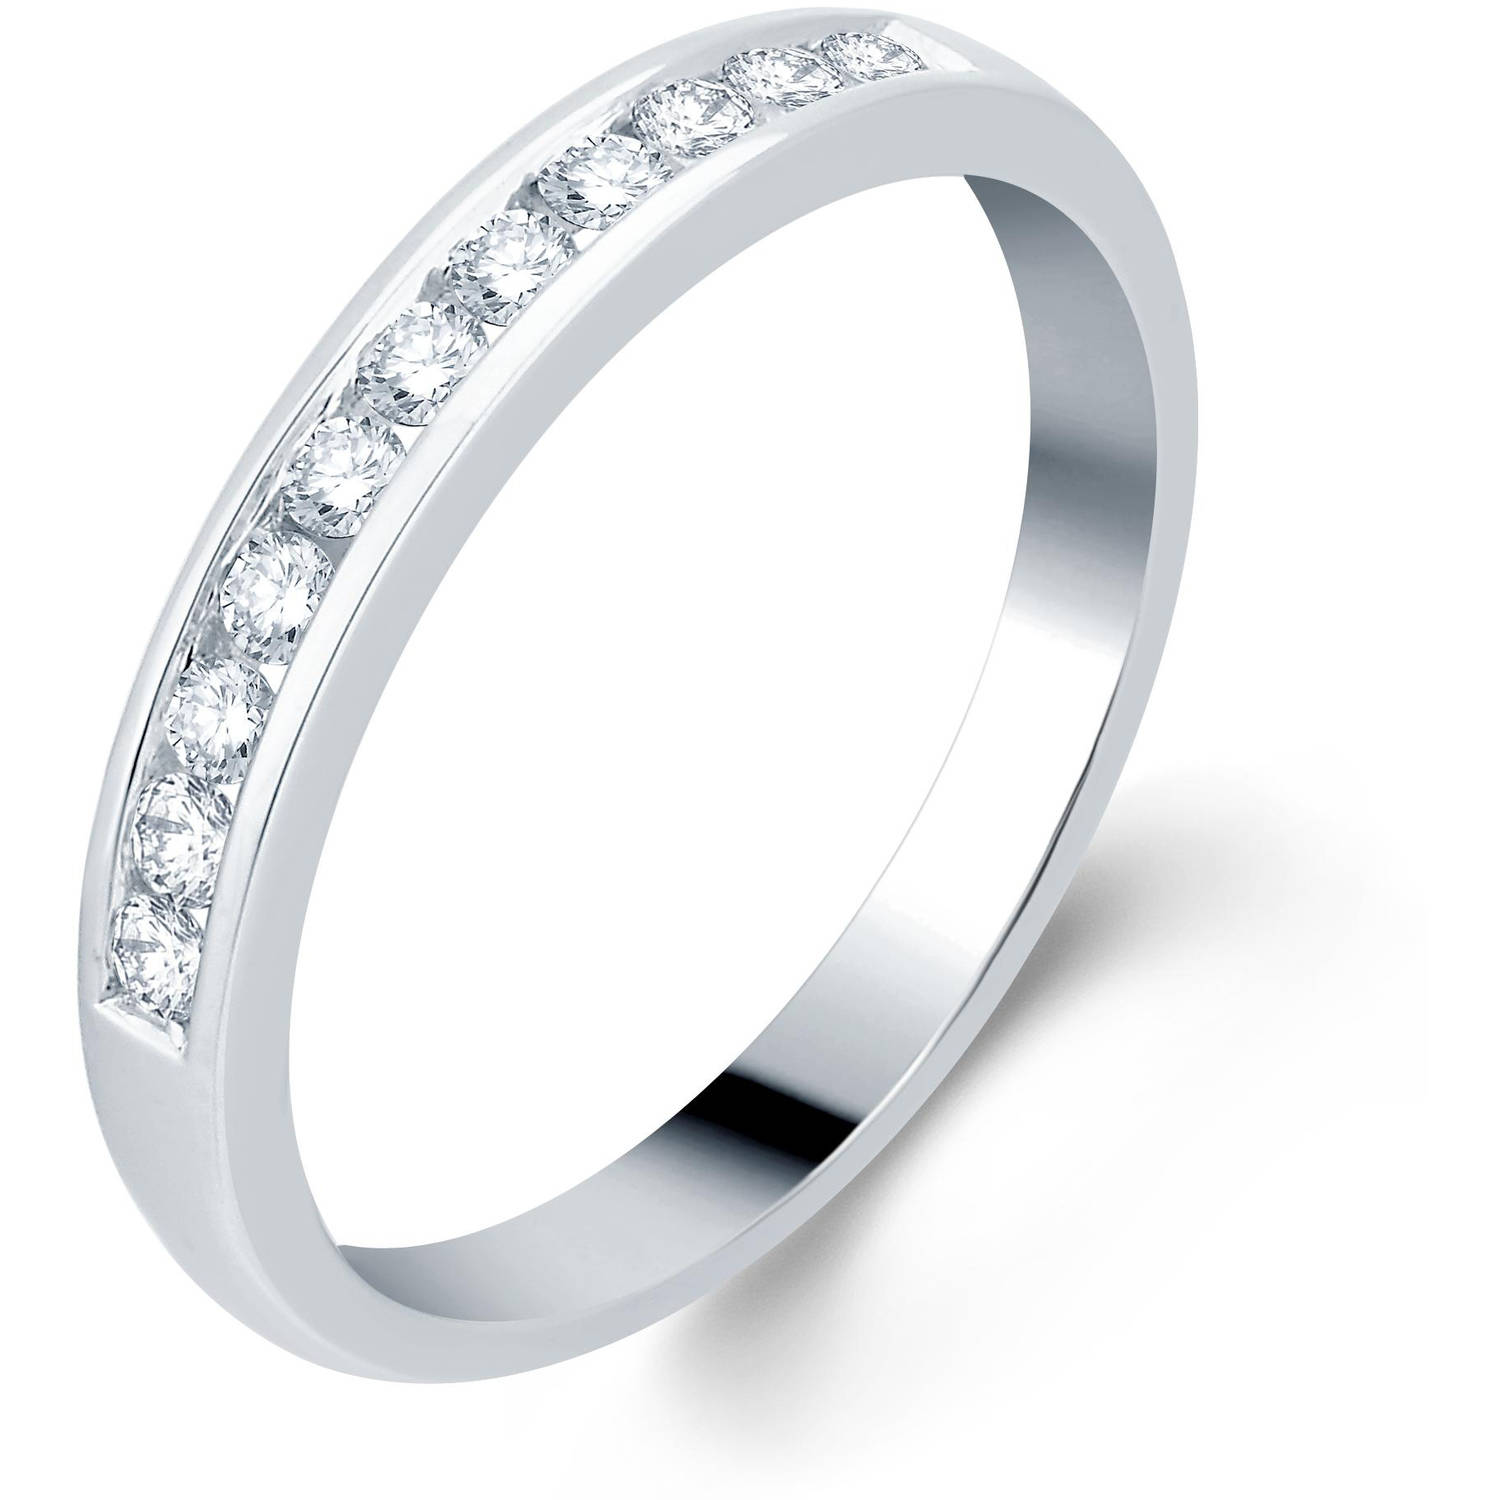 1/4 Carat T.W. Round Diamond 10kt White Gold Wedding Band, I-J/I2-I3